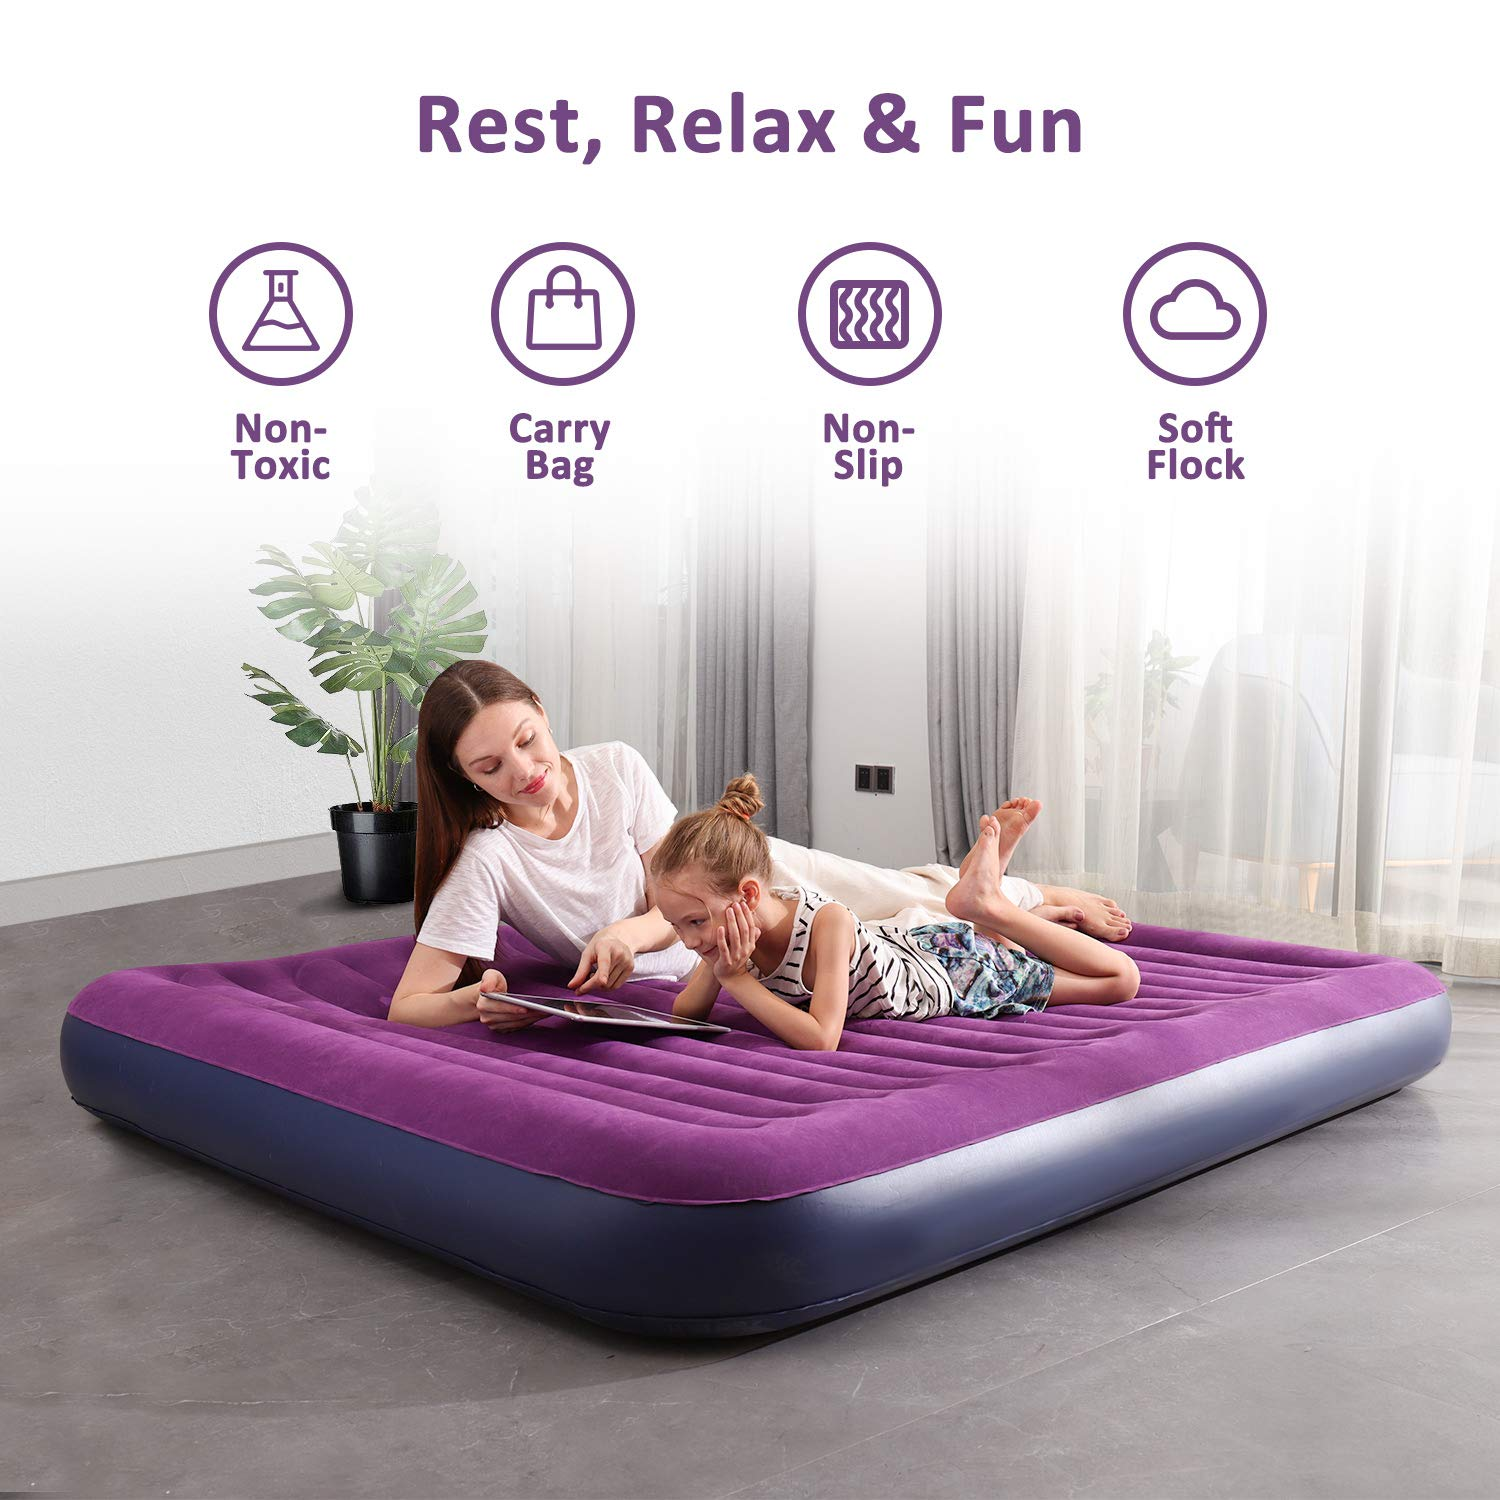 OlarHike Queen Air Mattress, Inflatable Single High Airbed for Guests, Blow up Raised Air Bed for Camping with Electric Air Battery Pump, Purple by OlarHike (Image #3)